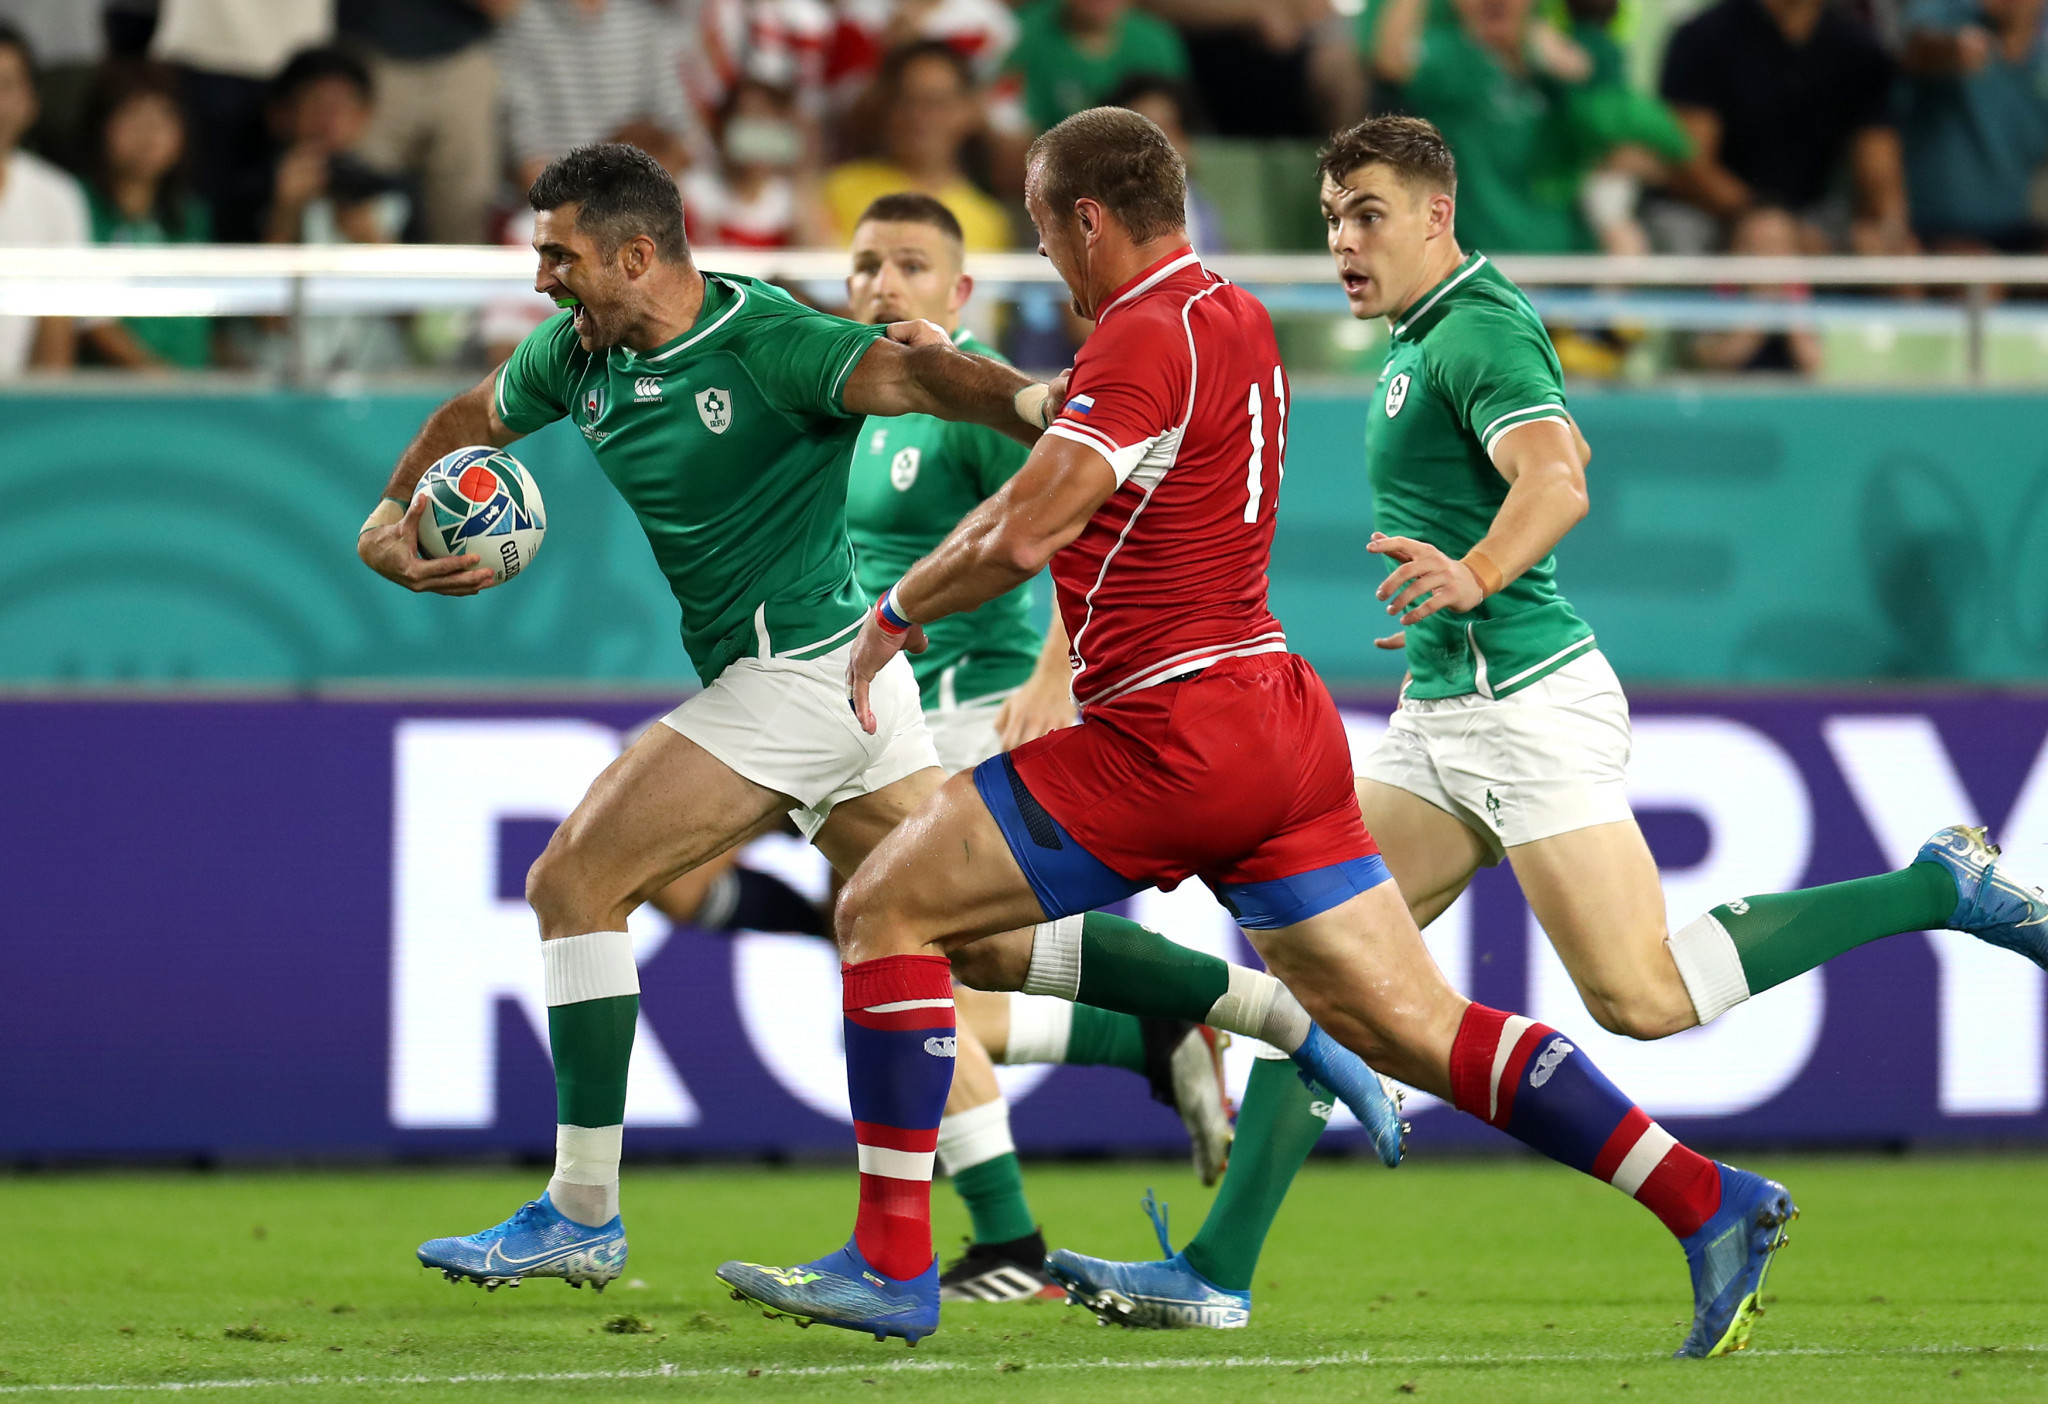 Rob Kearney opened the scoring early for Ireland against Russia ©Getty Images